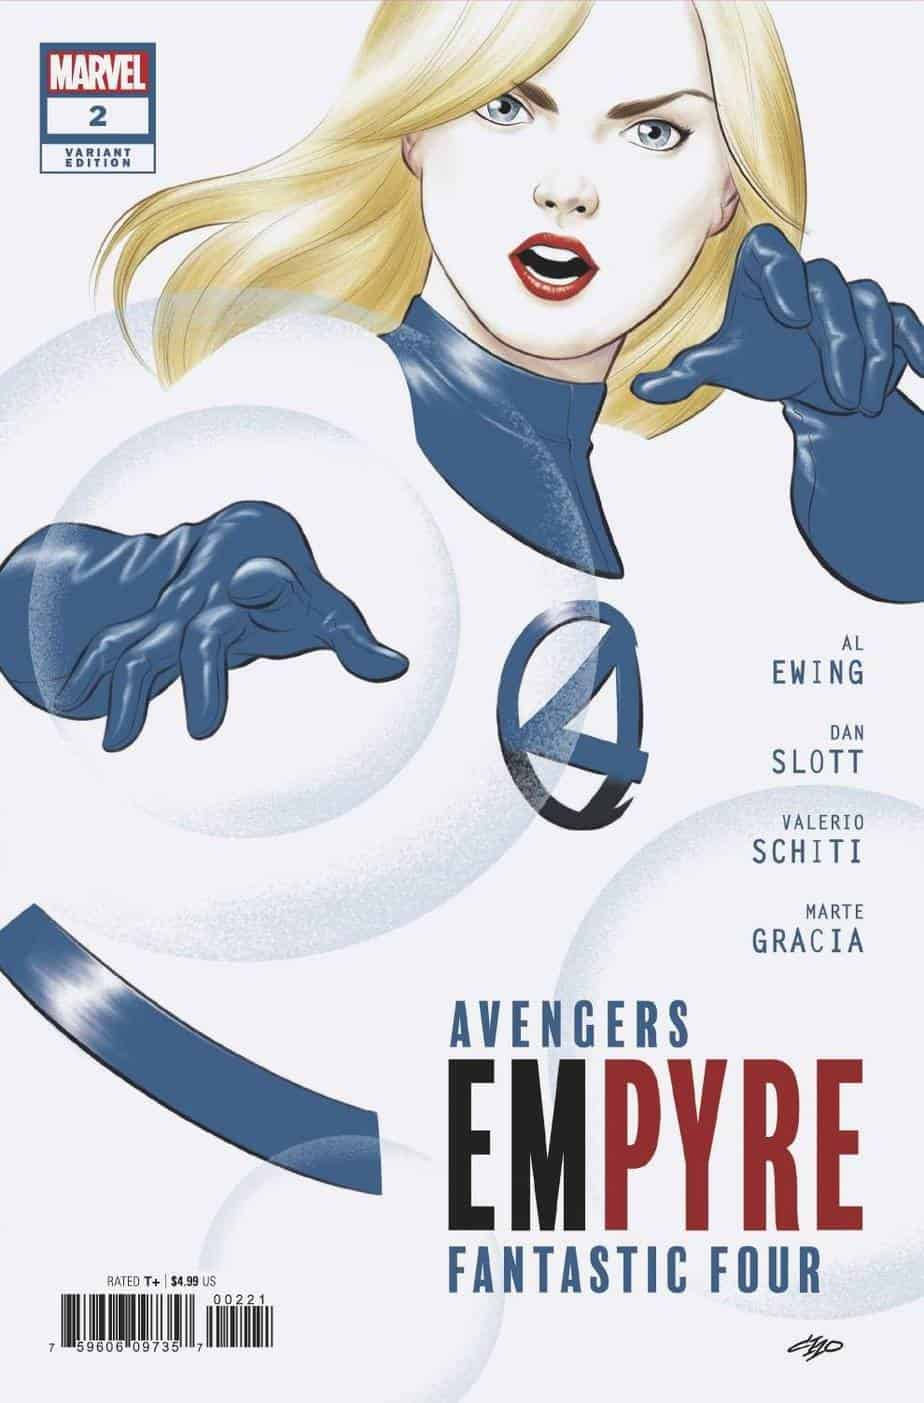 EMPYRE #2 - Cover C